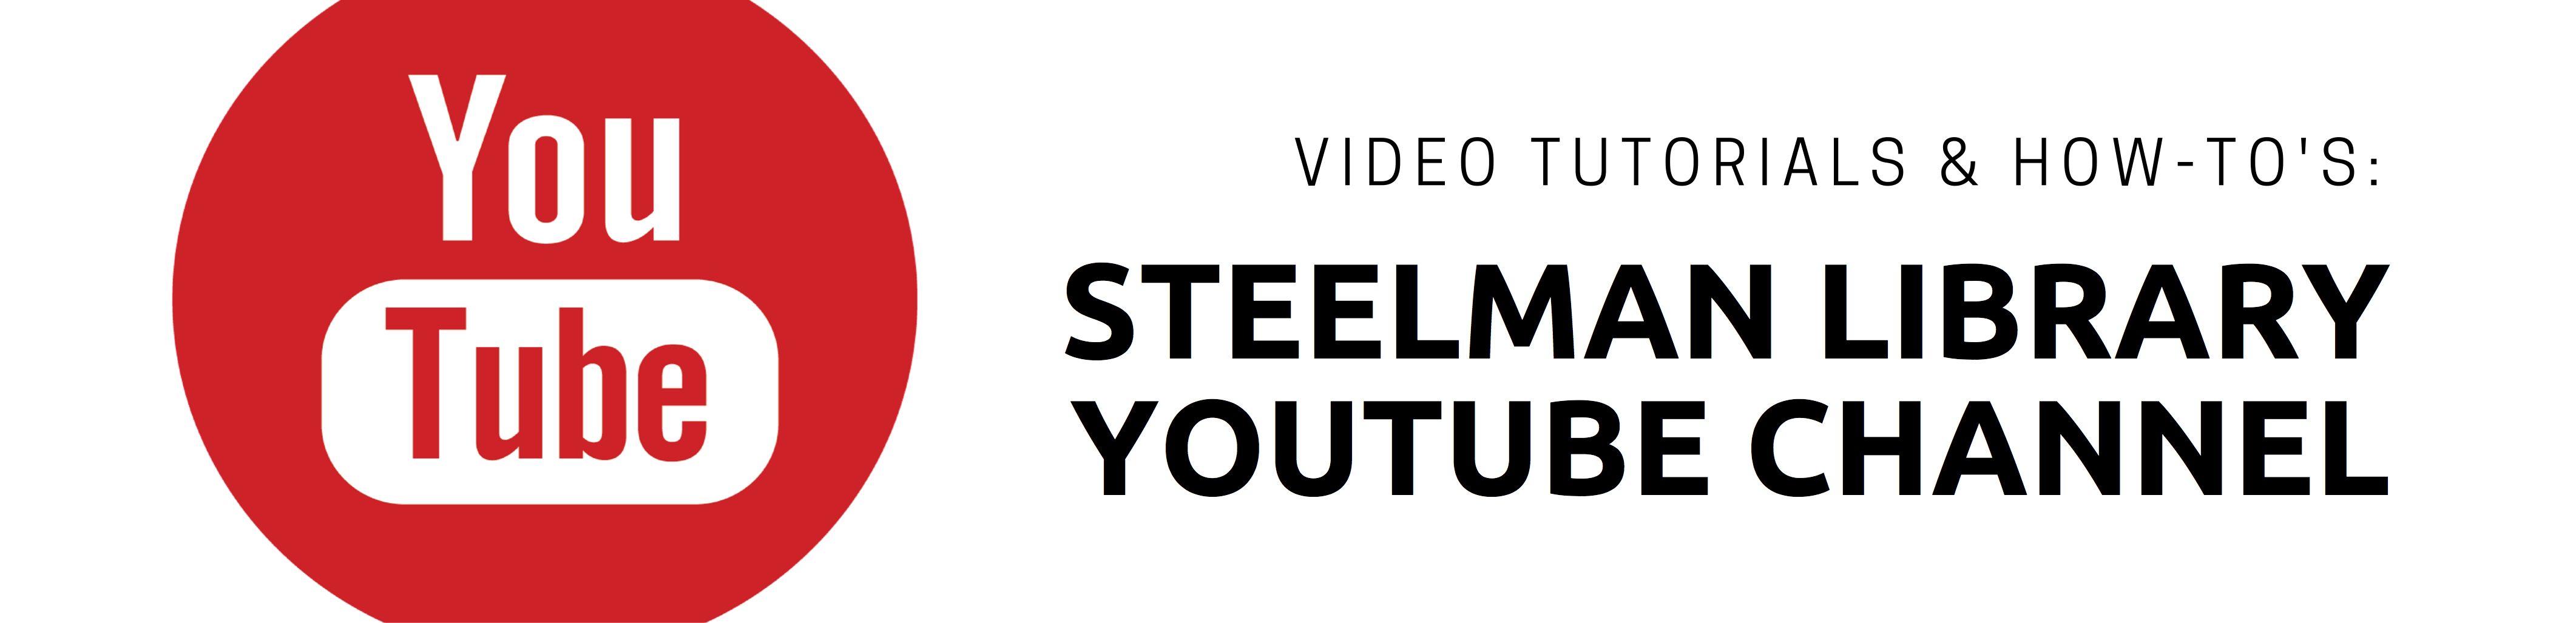 Steelman Youtube